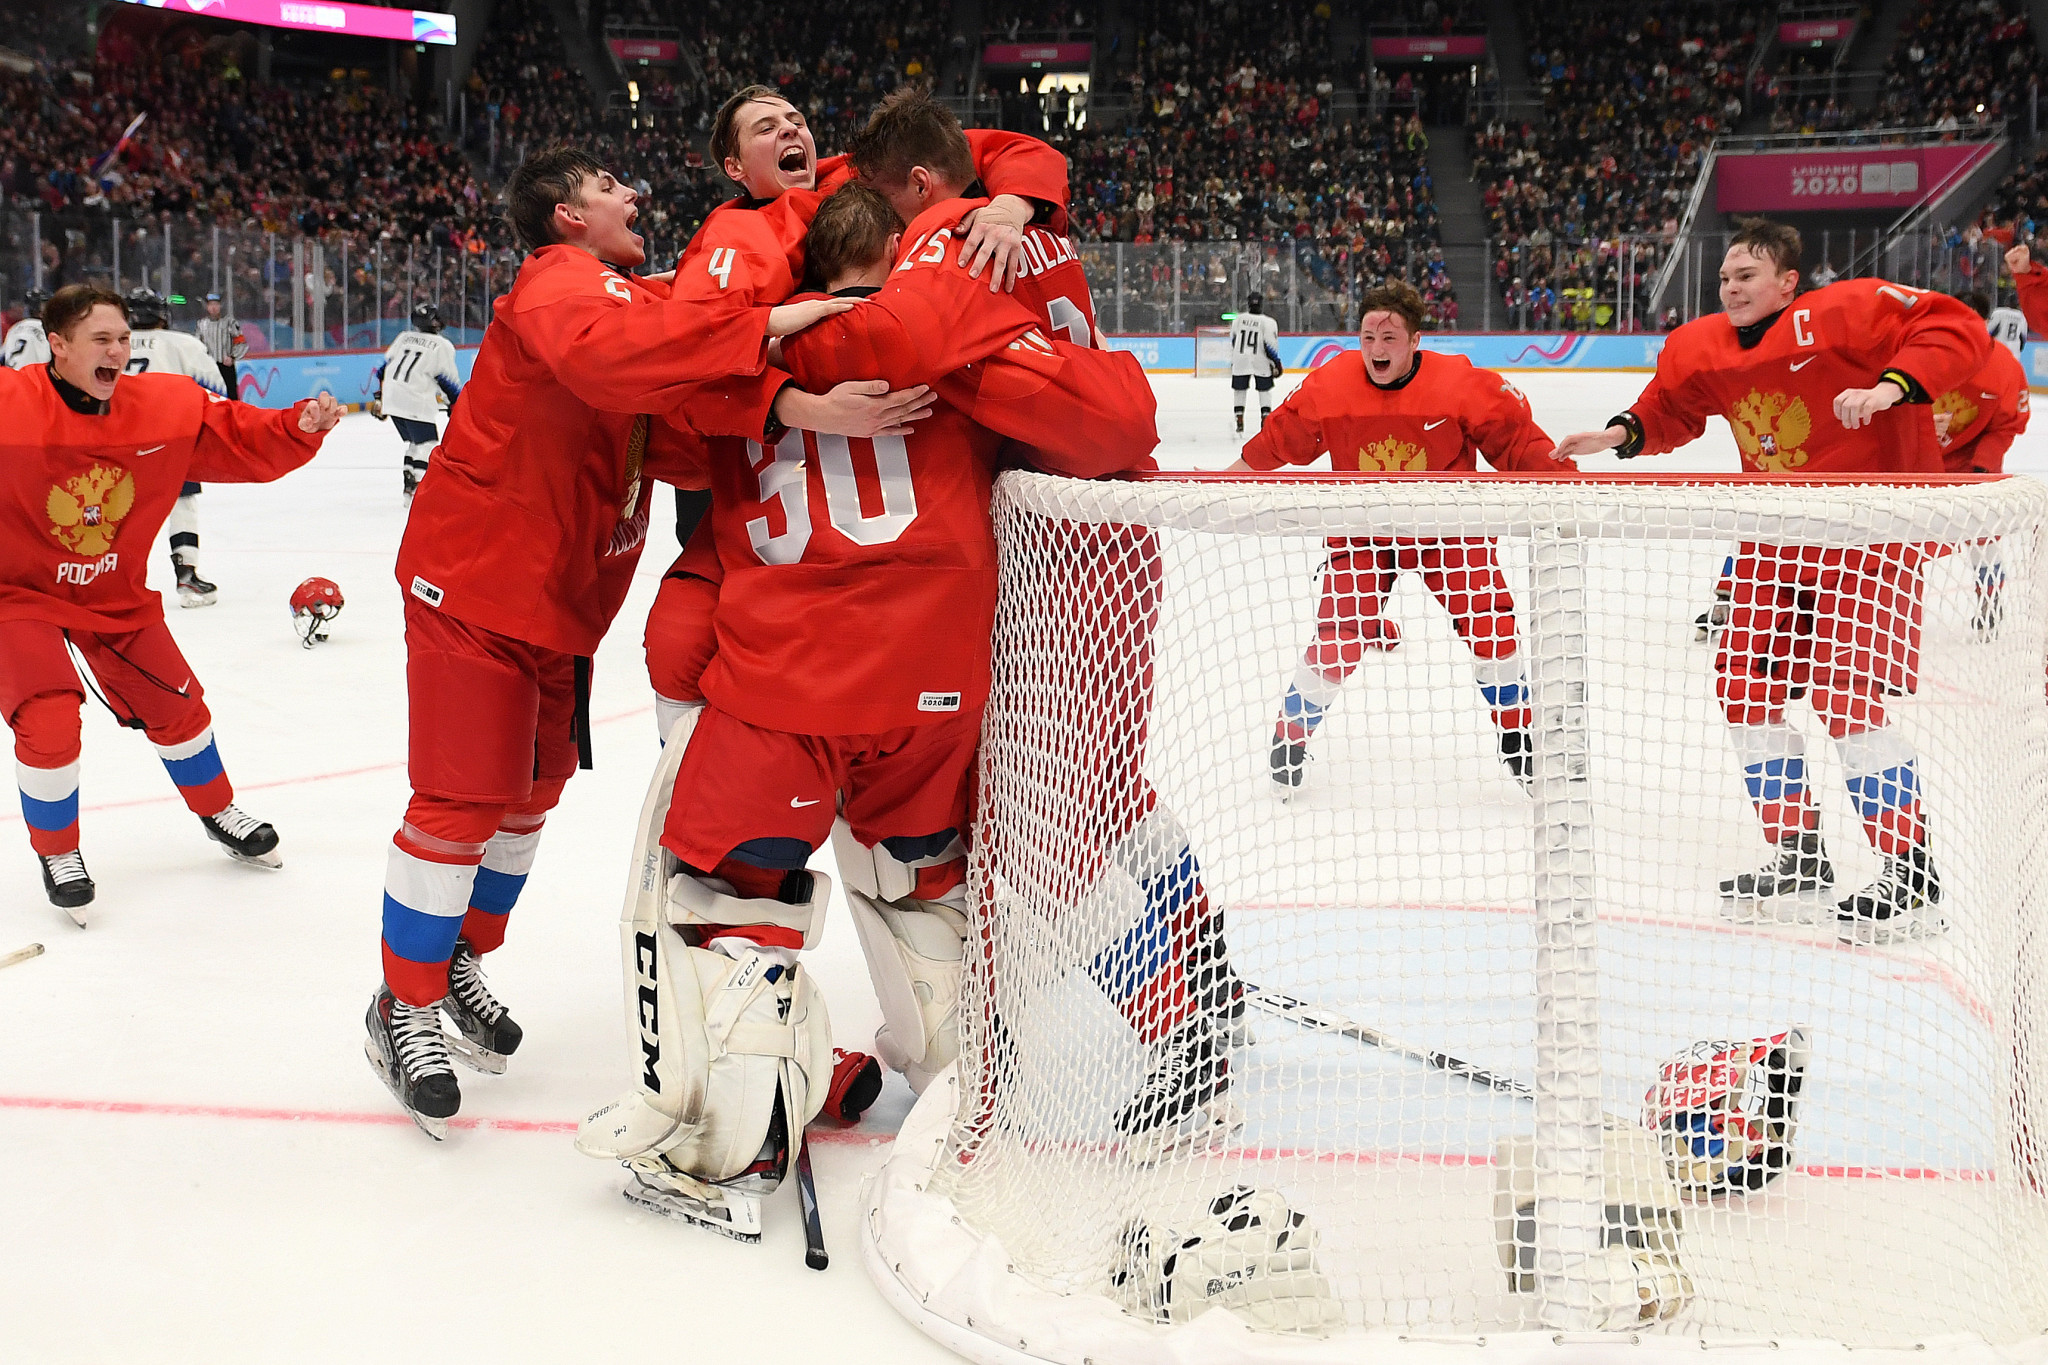 Russia beat United States to clinch men's ice hockey title at Lausanne 2020